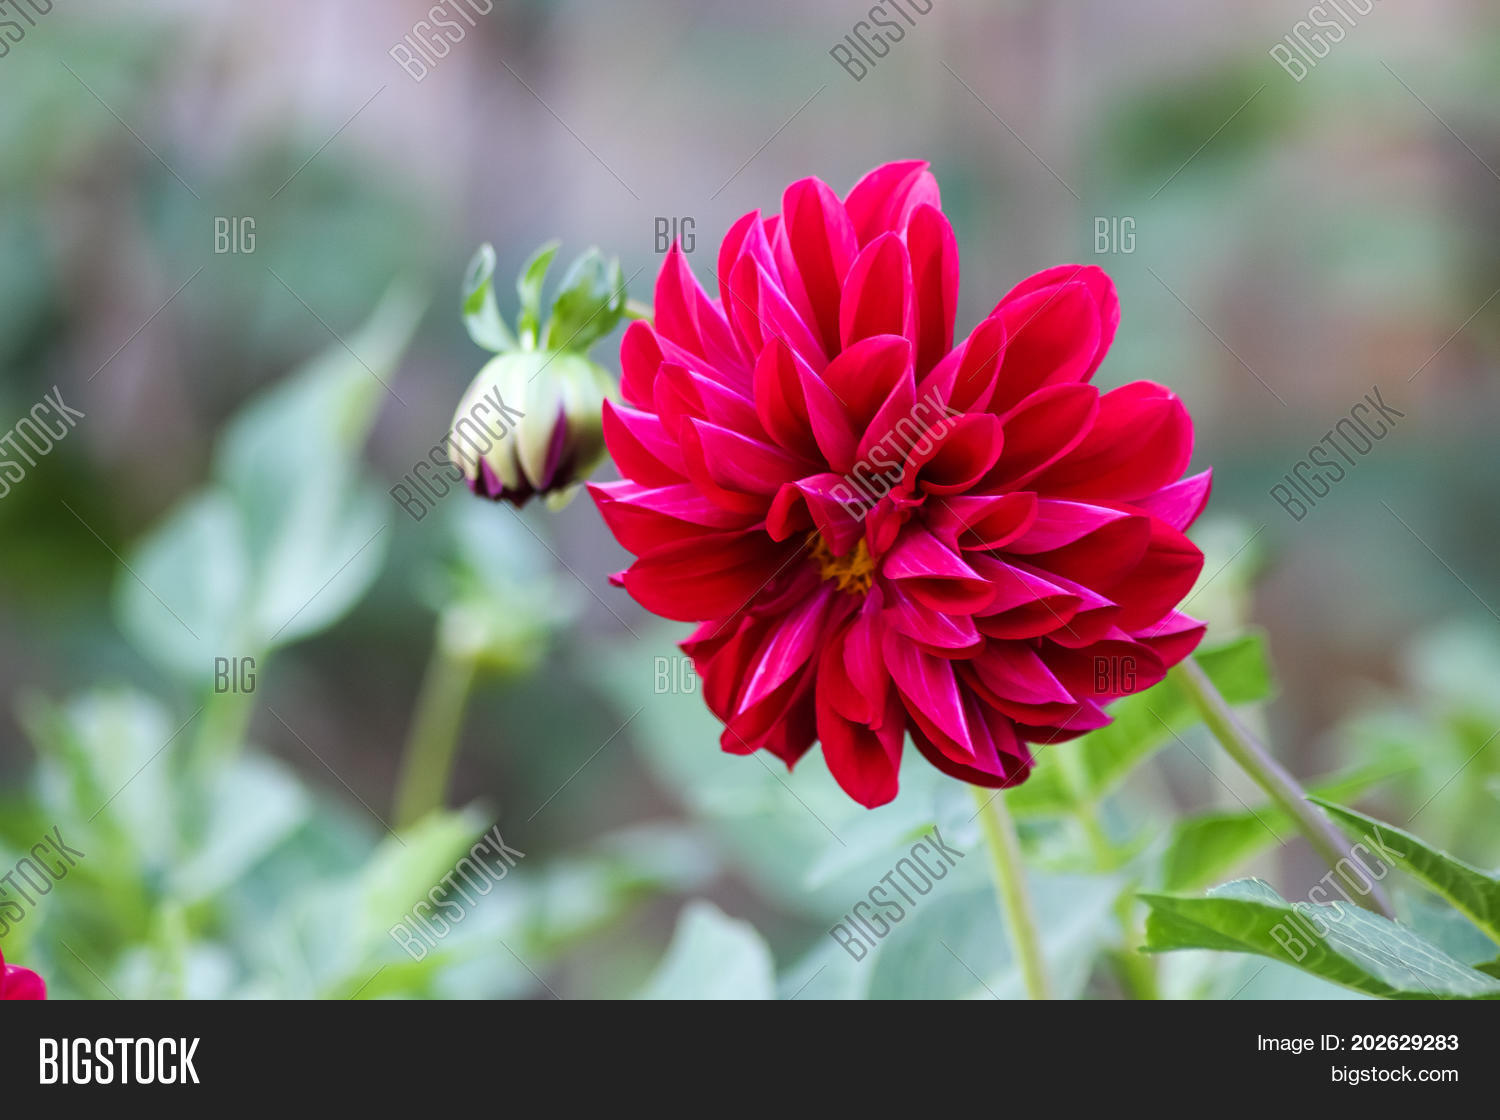 Red Bright Deep Colored Flowers Image & Photo   Bigstock